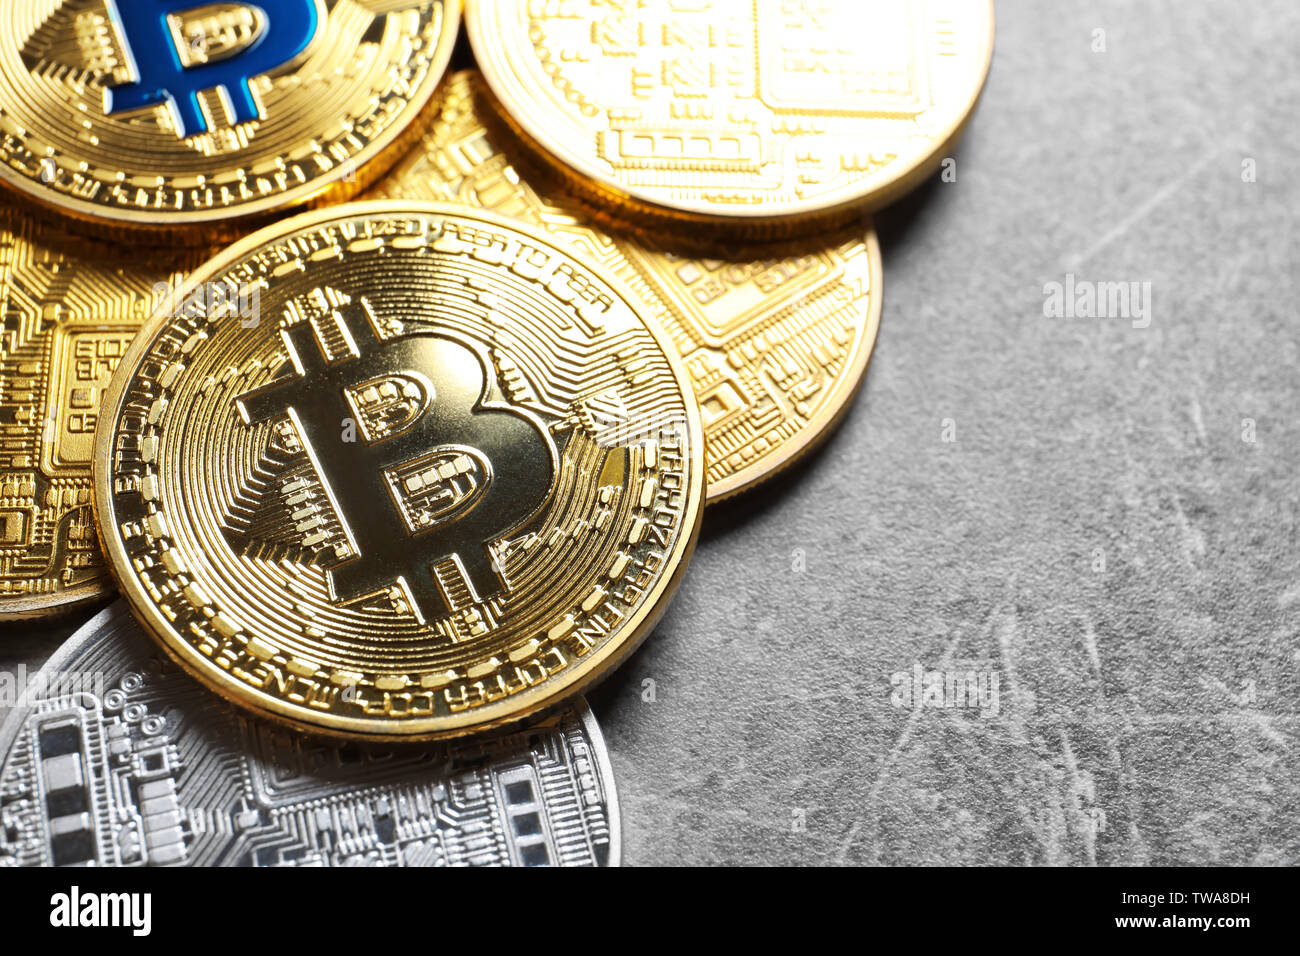 Golden and silver bitcoins on grey background. Finance trading - Stock Image